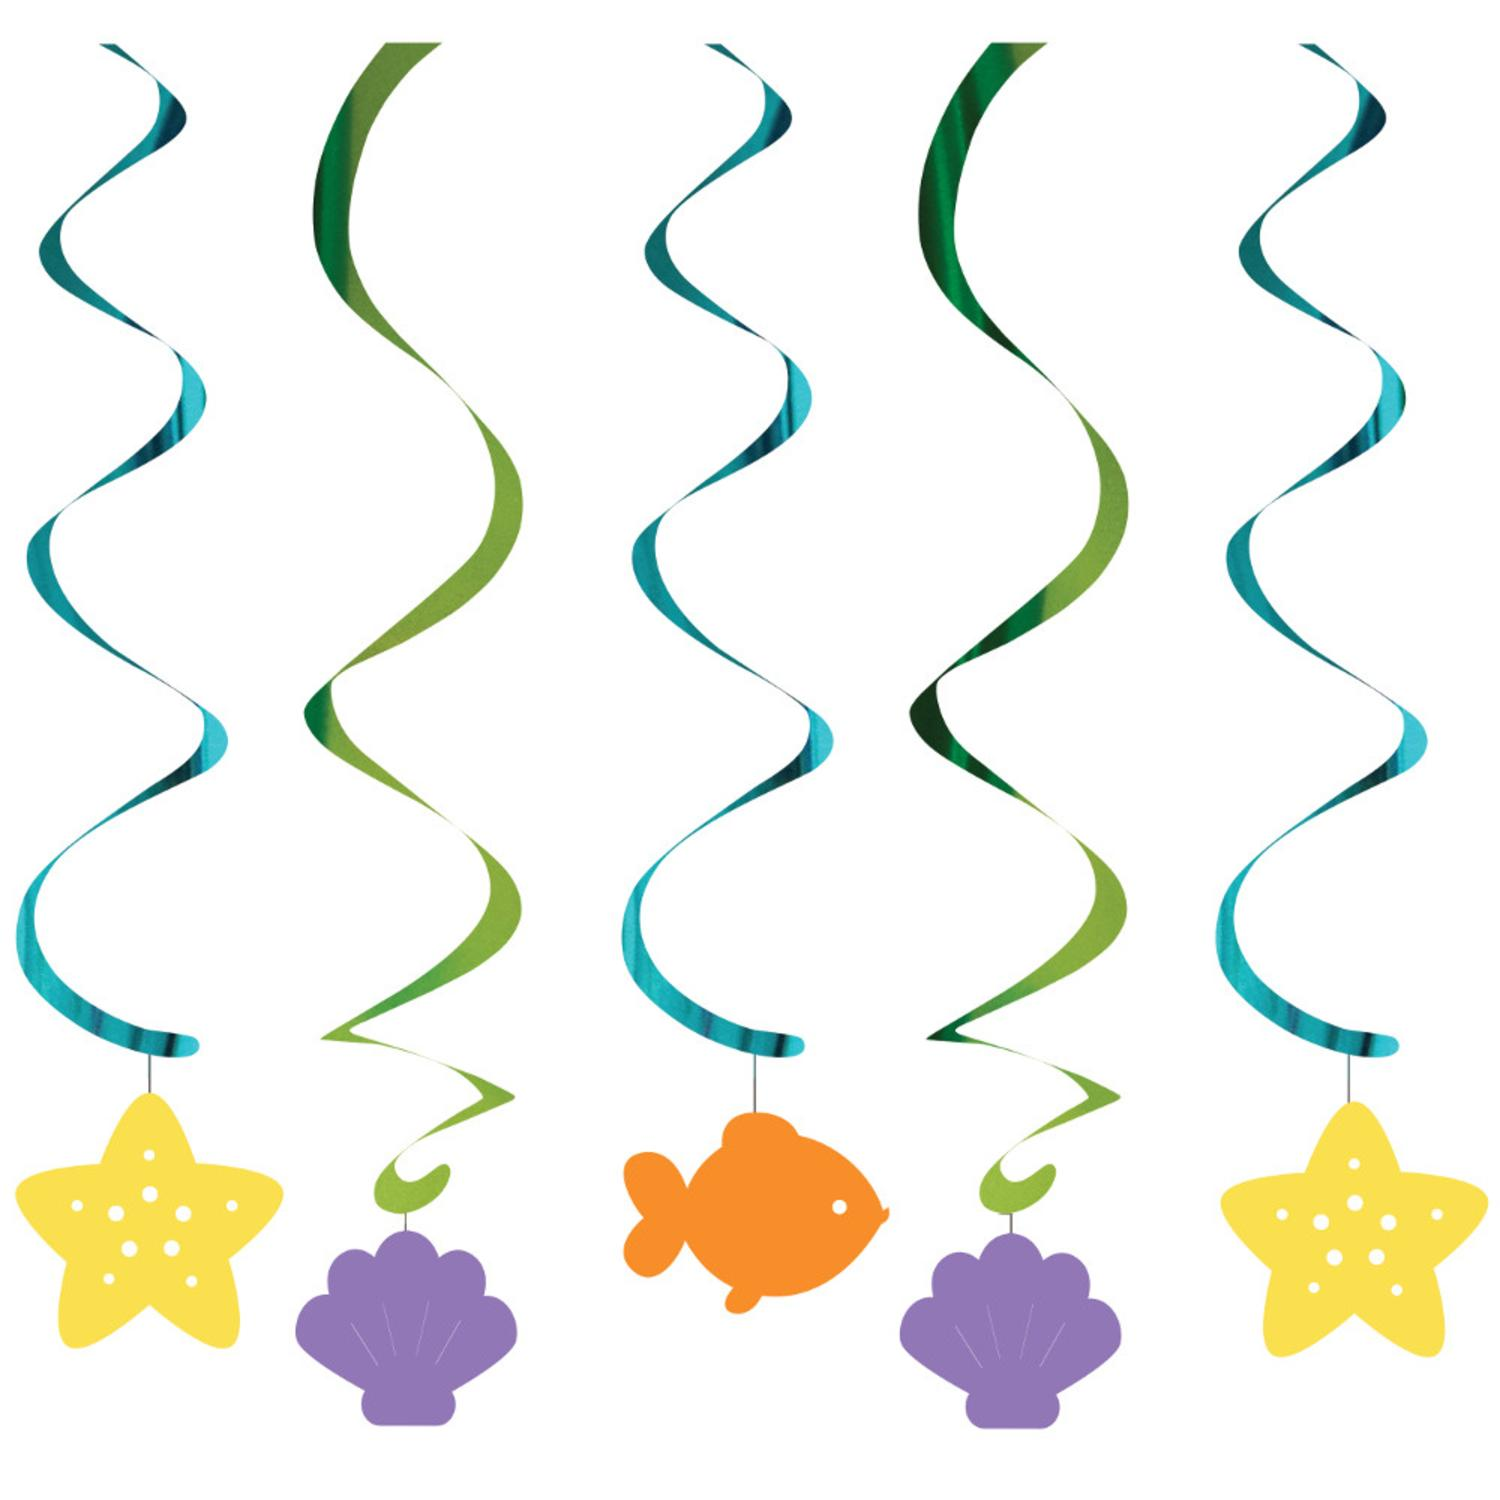 Club Pack of 30 Mermaid Friends Assorted Dizzy Danglers Hanging Party Decorations 32""